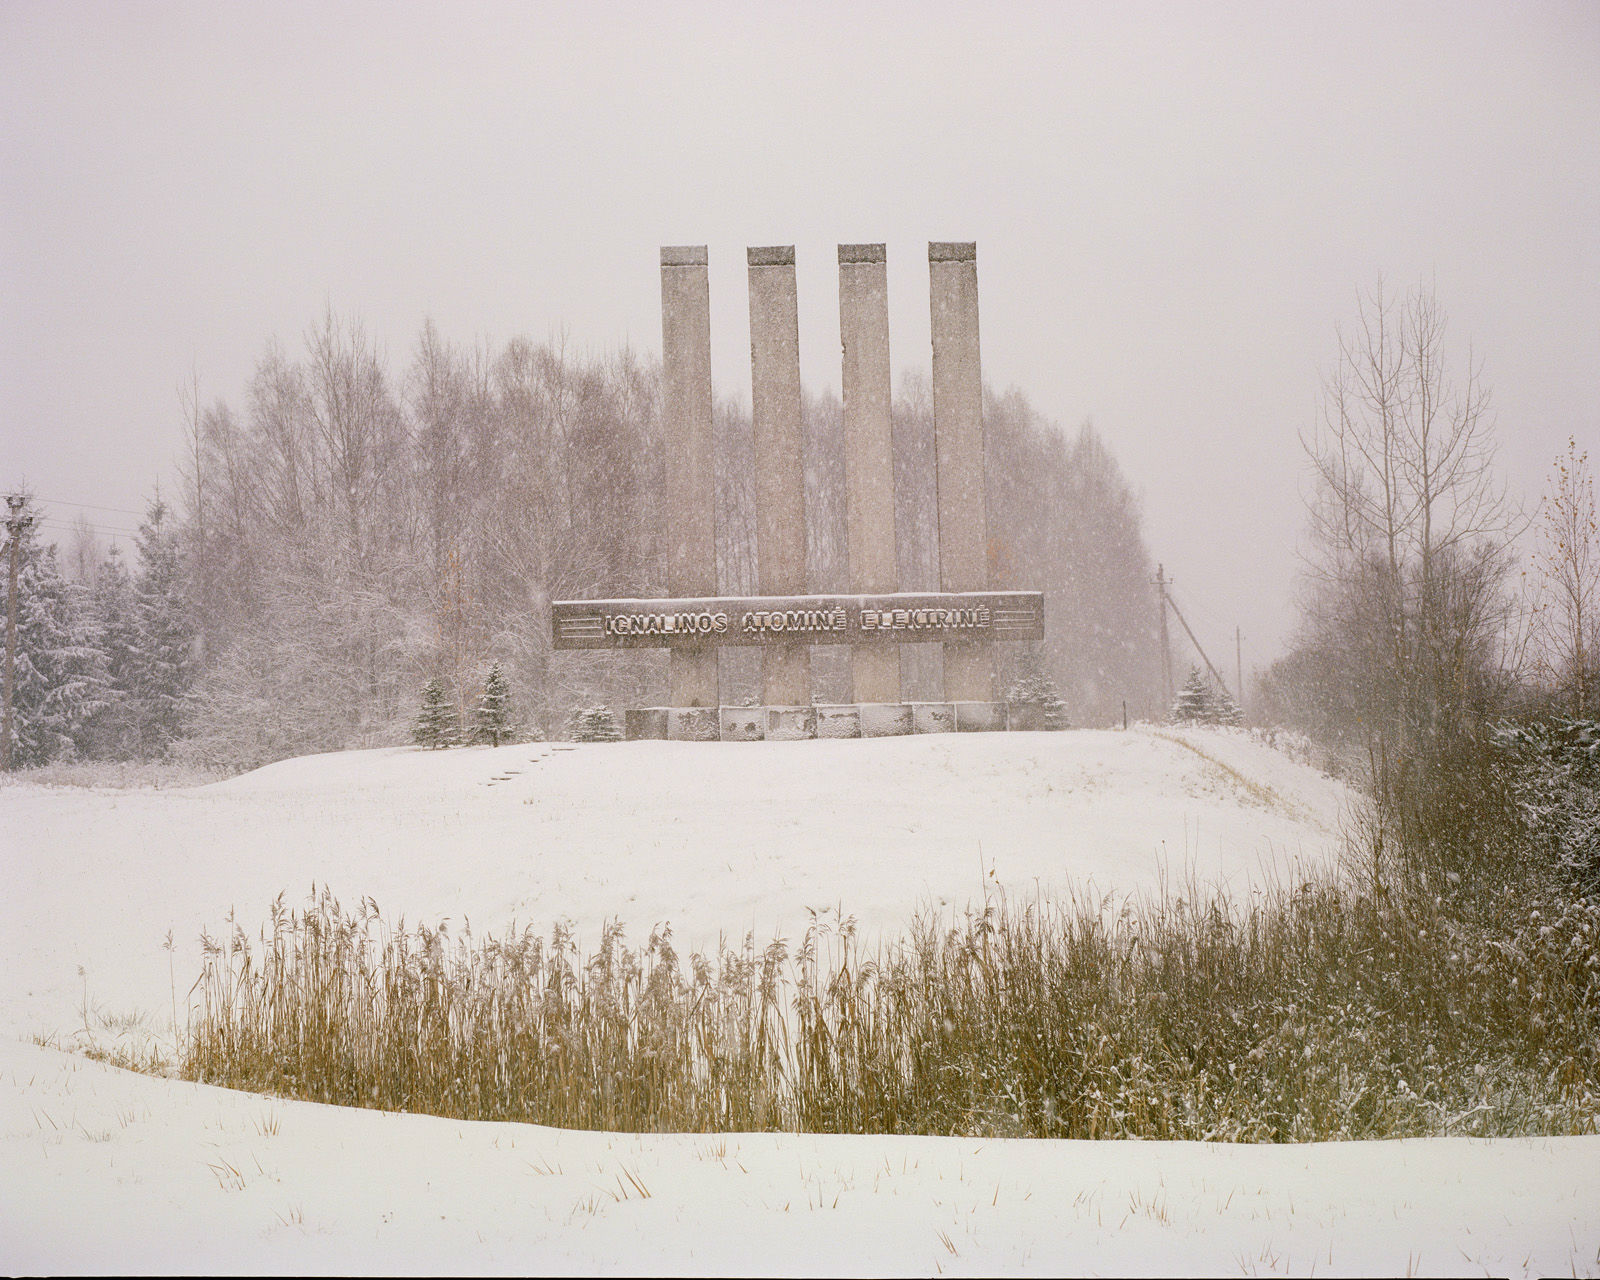 The Ignalina nuclear power plant.